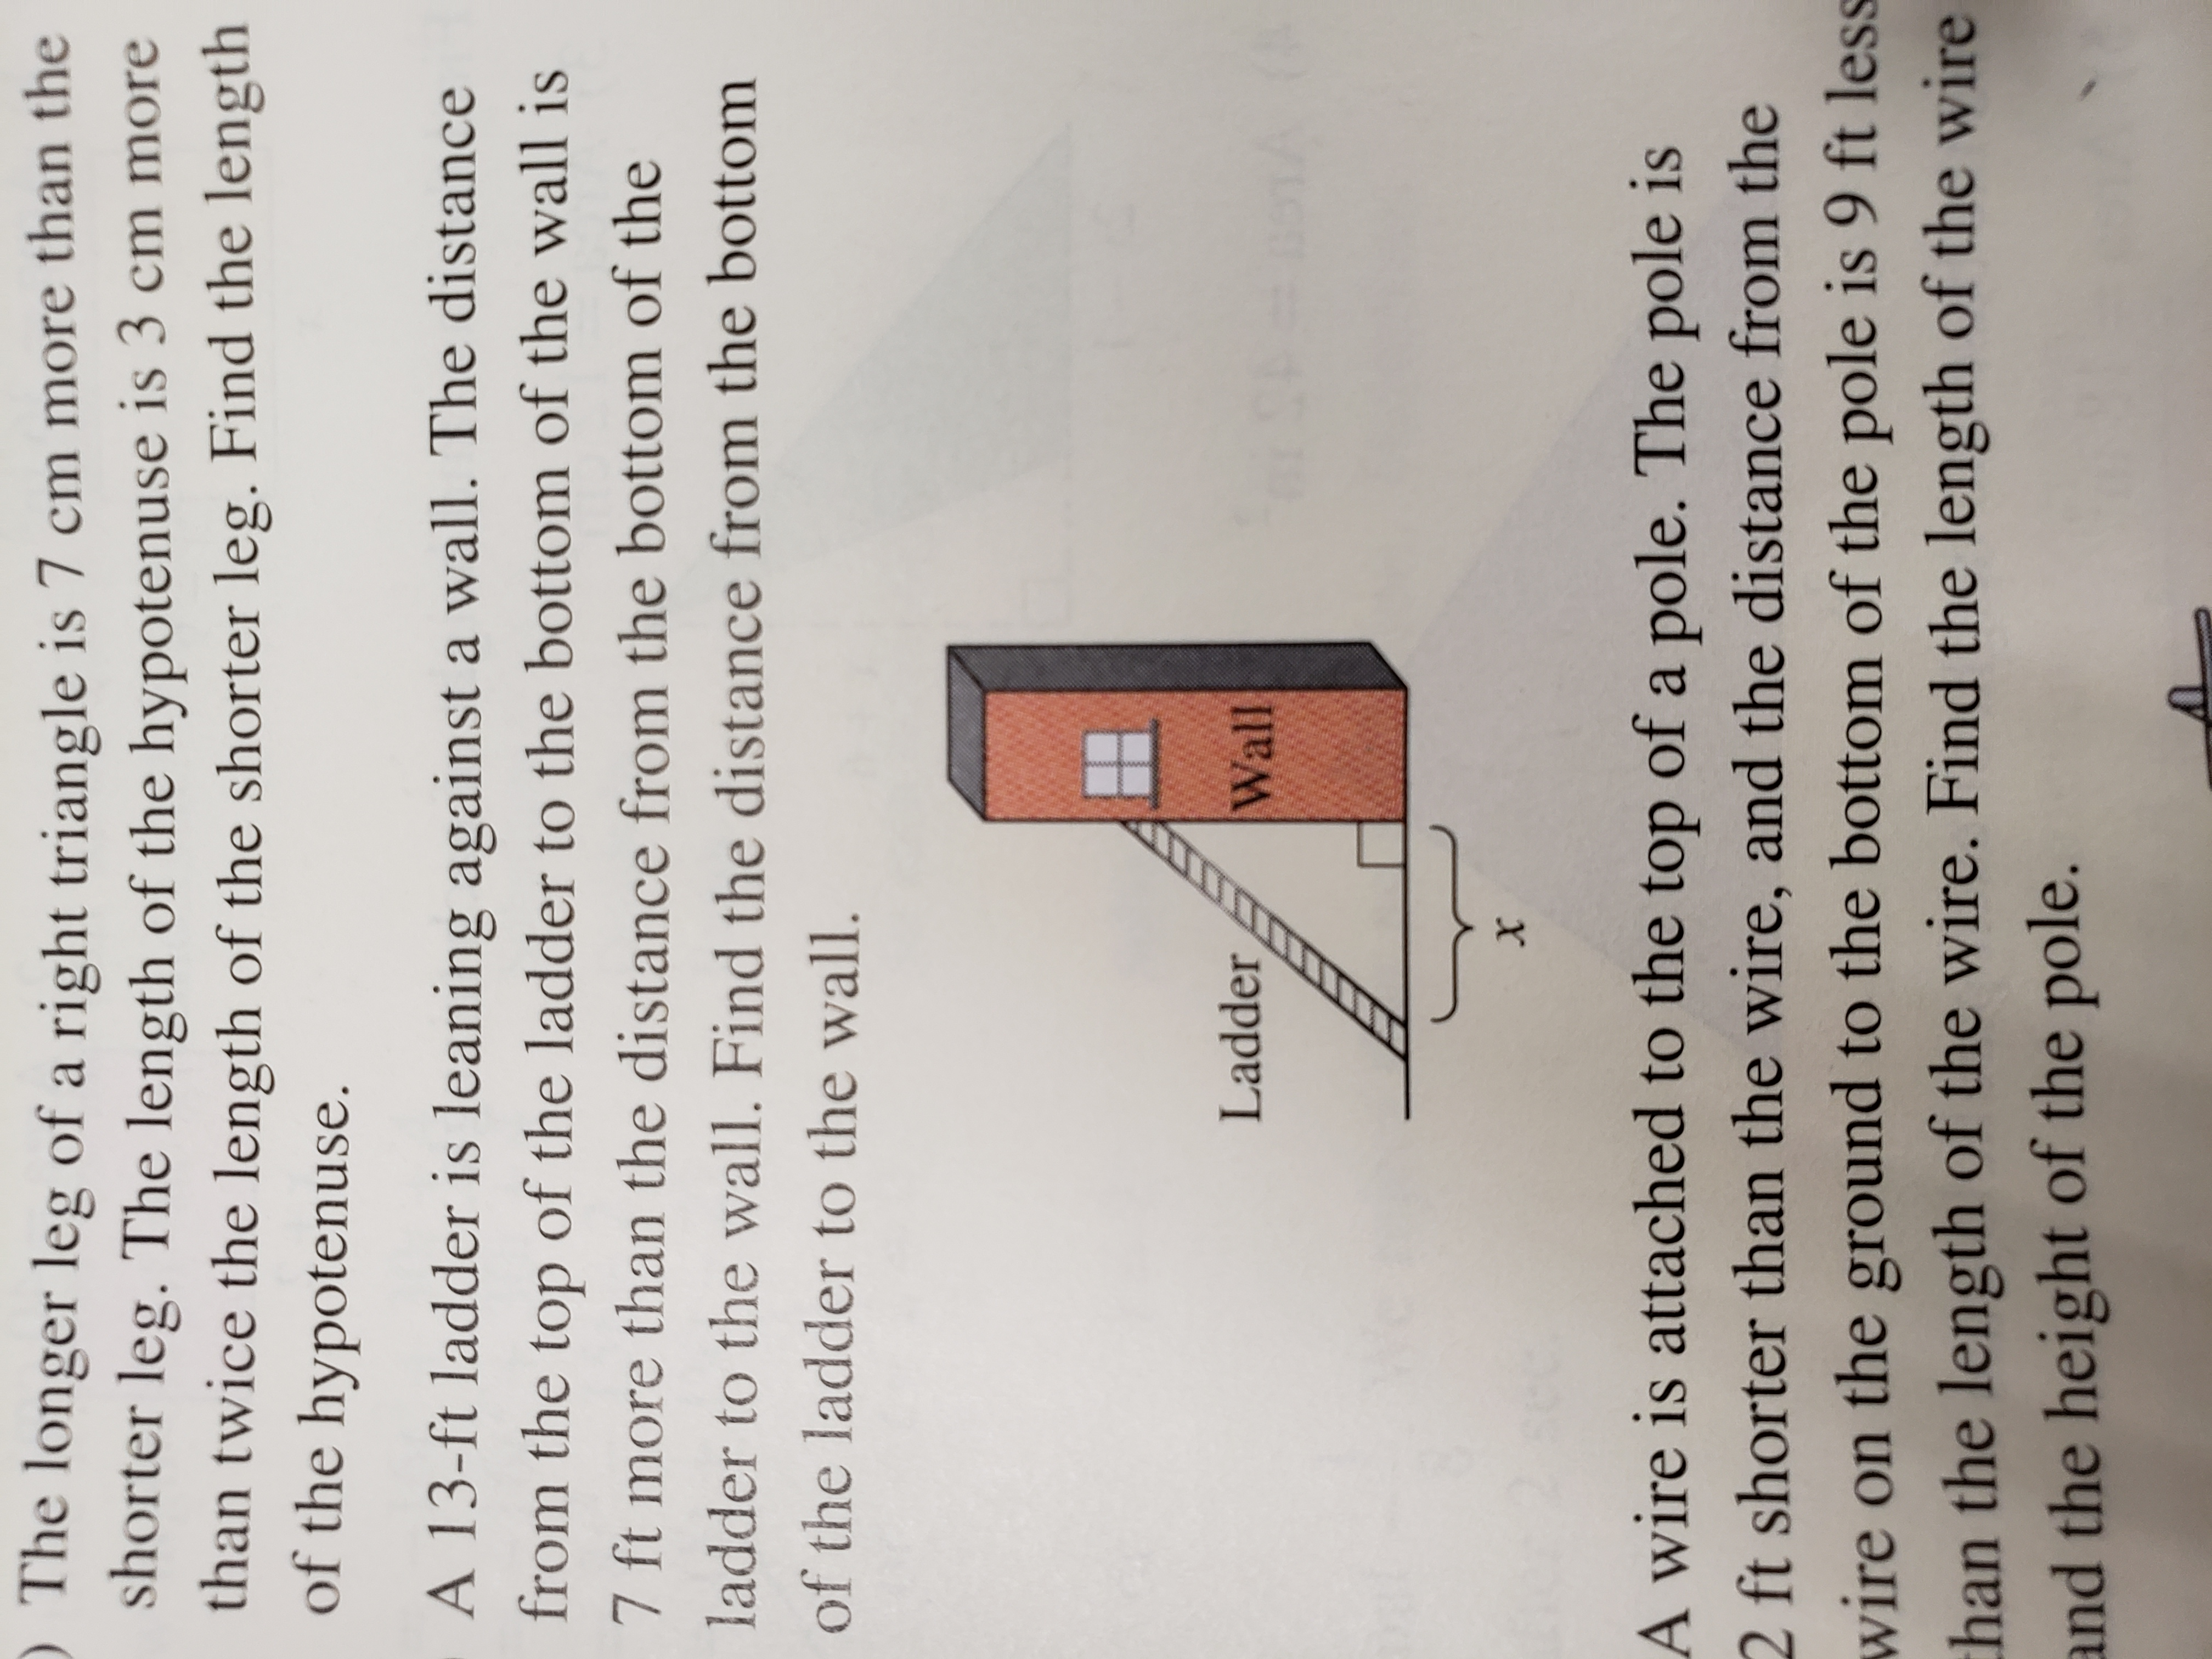 The longer leg of a right triangle is 7 cm more than the shorter leg. The length of the hypotenuse is 3 cm more than twice the length of the shorter leg. Find the length of the hypotenuse. A 13-ft ladder is leaning against a wall. The distance from the top of the ladder to the bottom of the wall is 7 ft more than the distance from the bottom of the ladder to the wall. Find the distance from the bottom of the ladder to the wall. Ladder Wall #o1A A wire is attached to the top of a pole. The pole is 2 ft shorter than the wire, and the distance from the wire on the ground to the bottom of the pole is 9 ft less han the length of the wire. Find the length of the wire and the height of the pole.